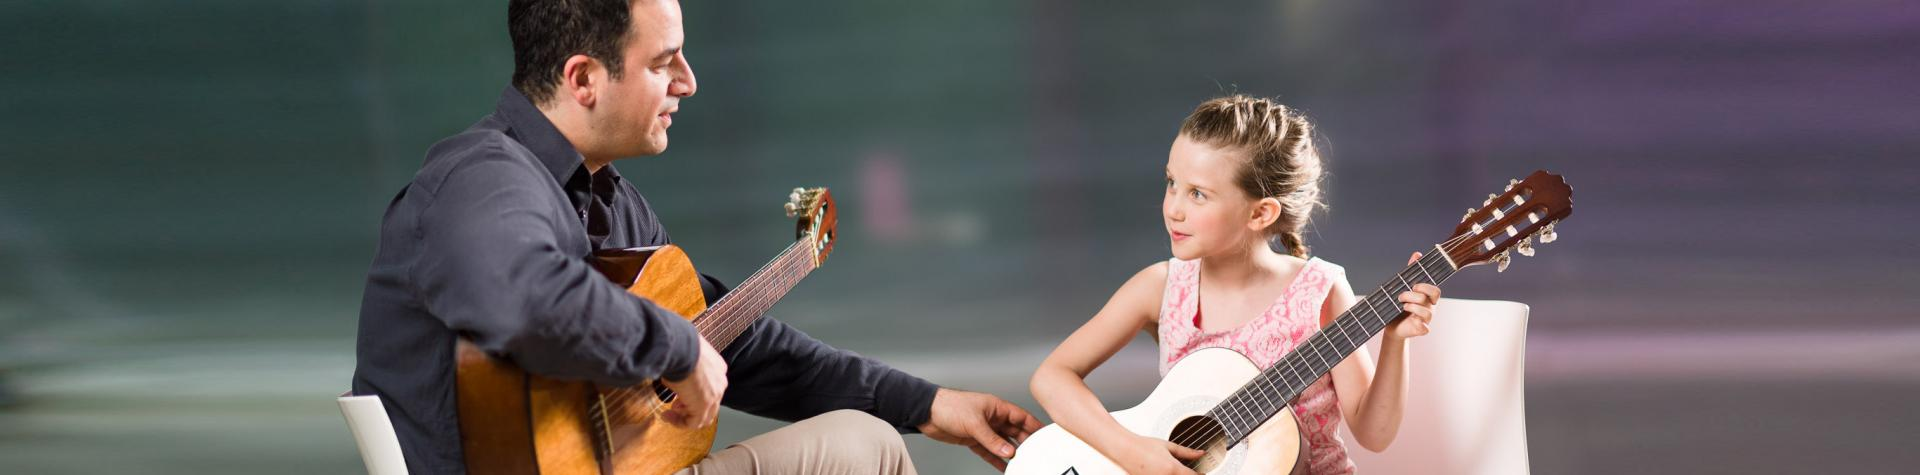 Music Lessons for Children and Teens